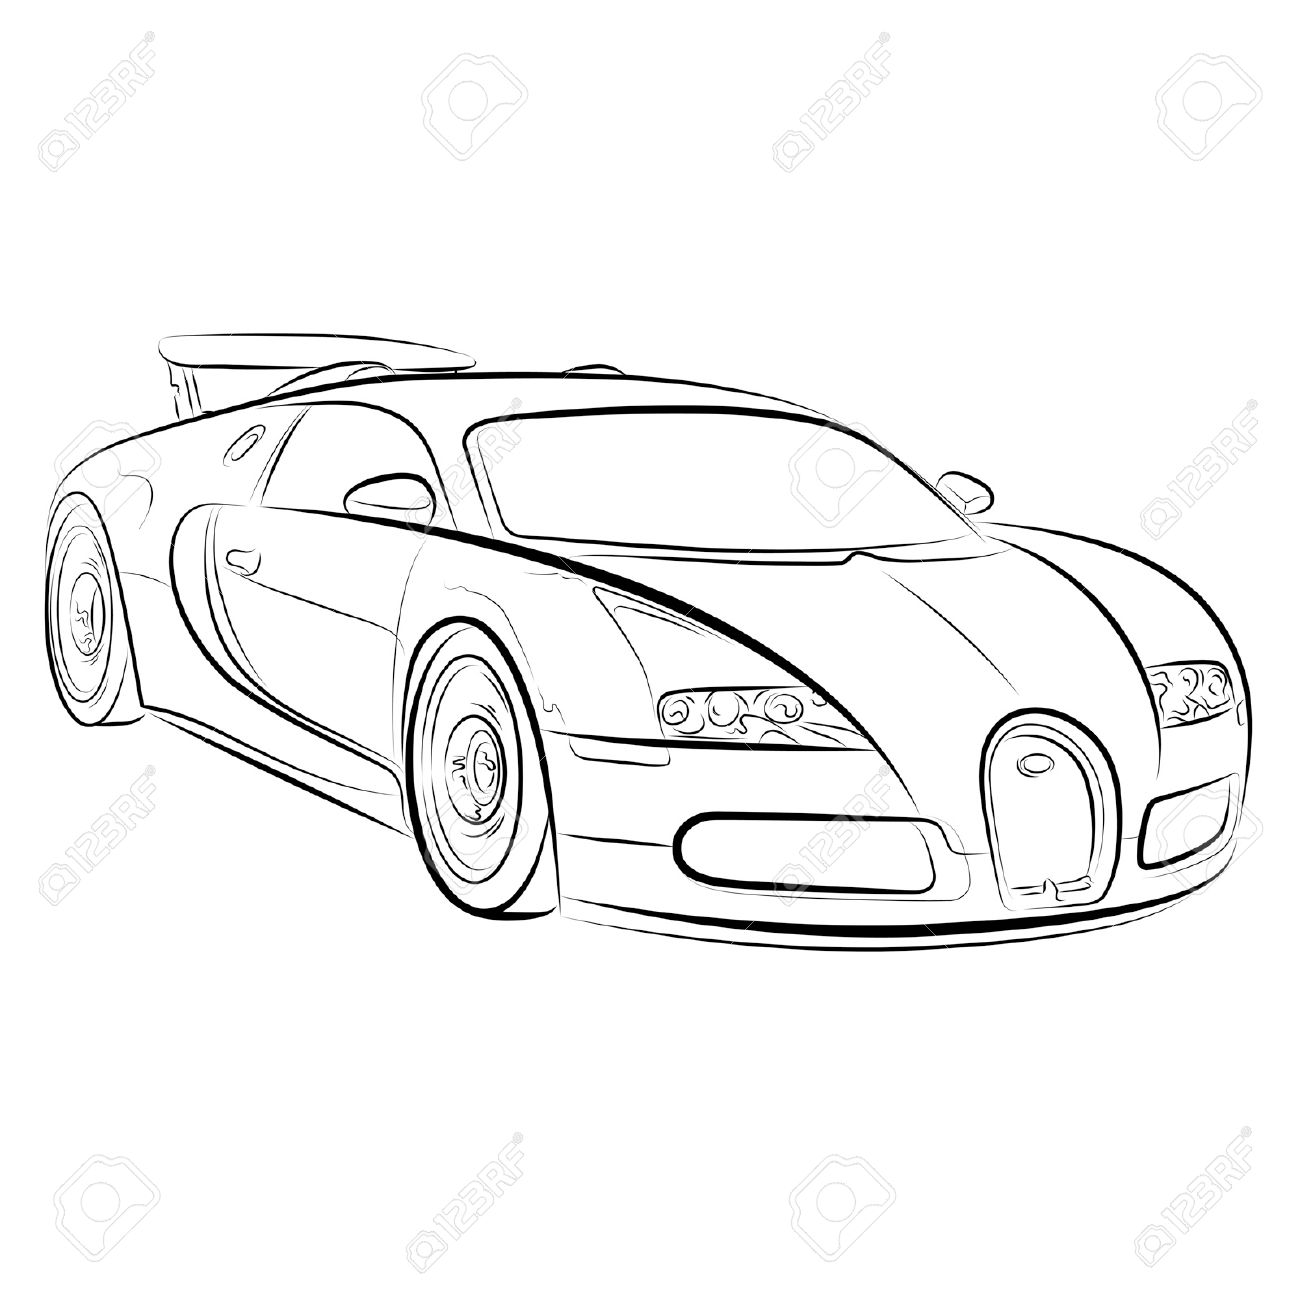 Drawing Of The Expensive Car. Royalty Free Cliparts, Vectors, And ...